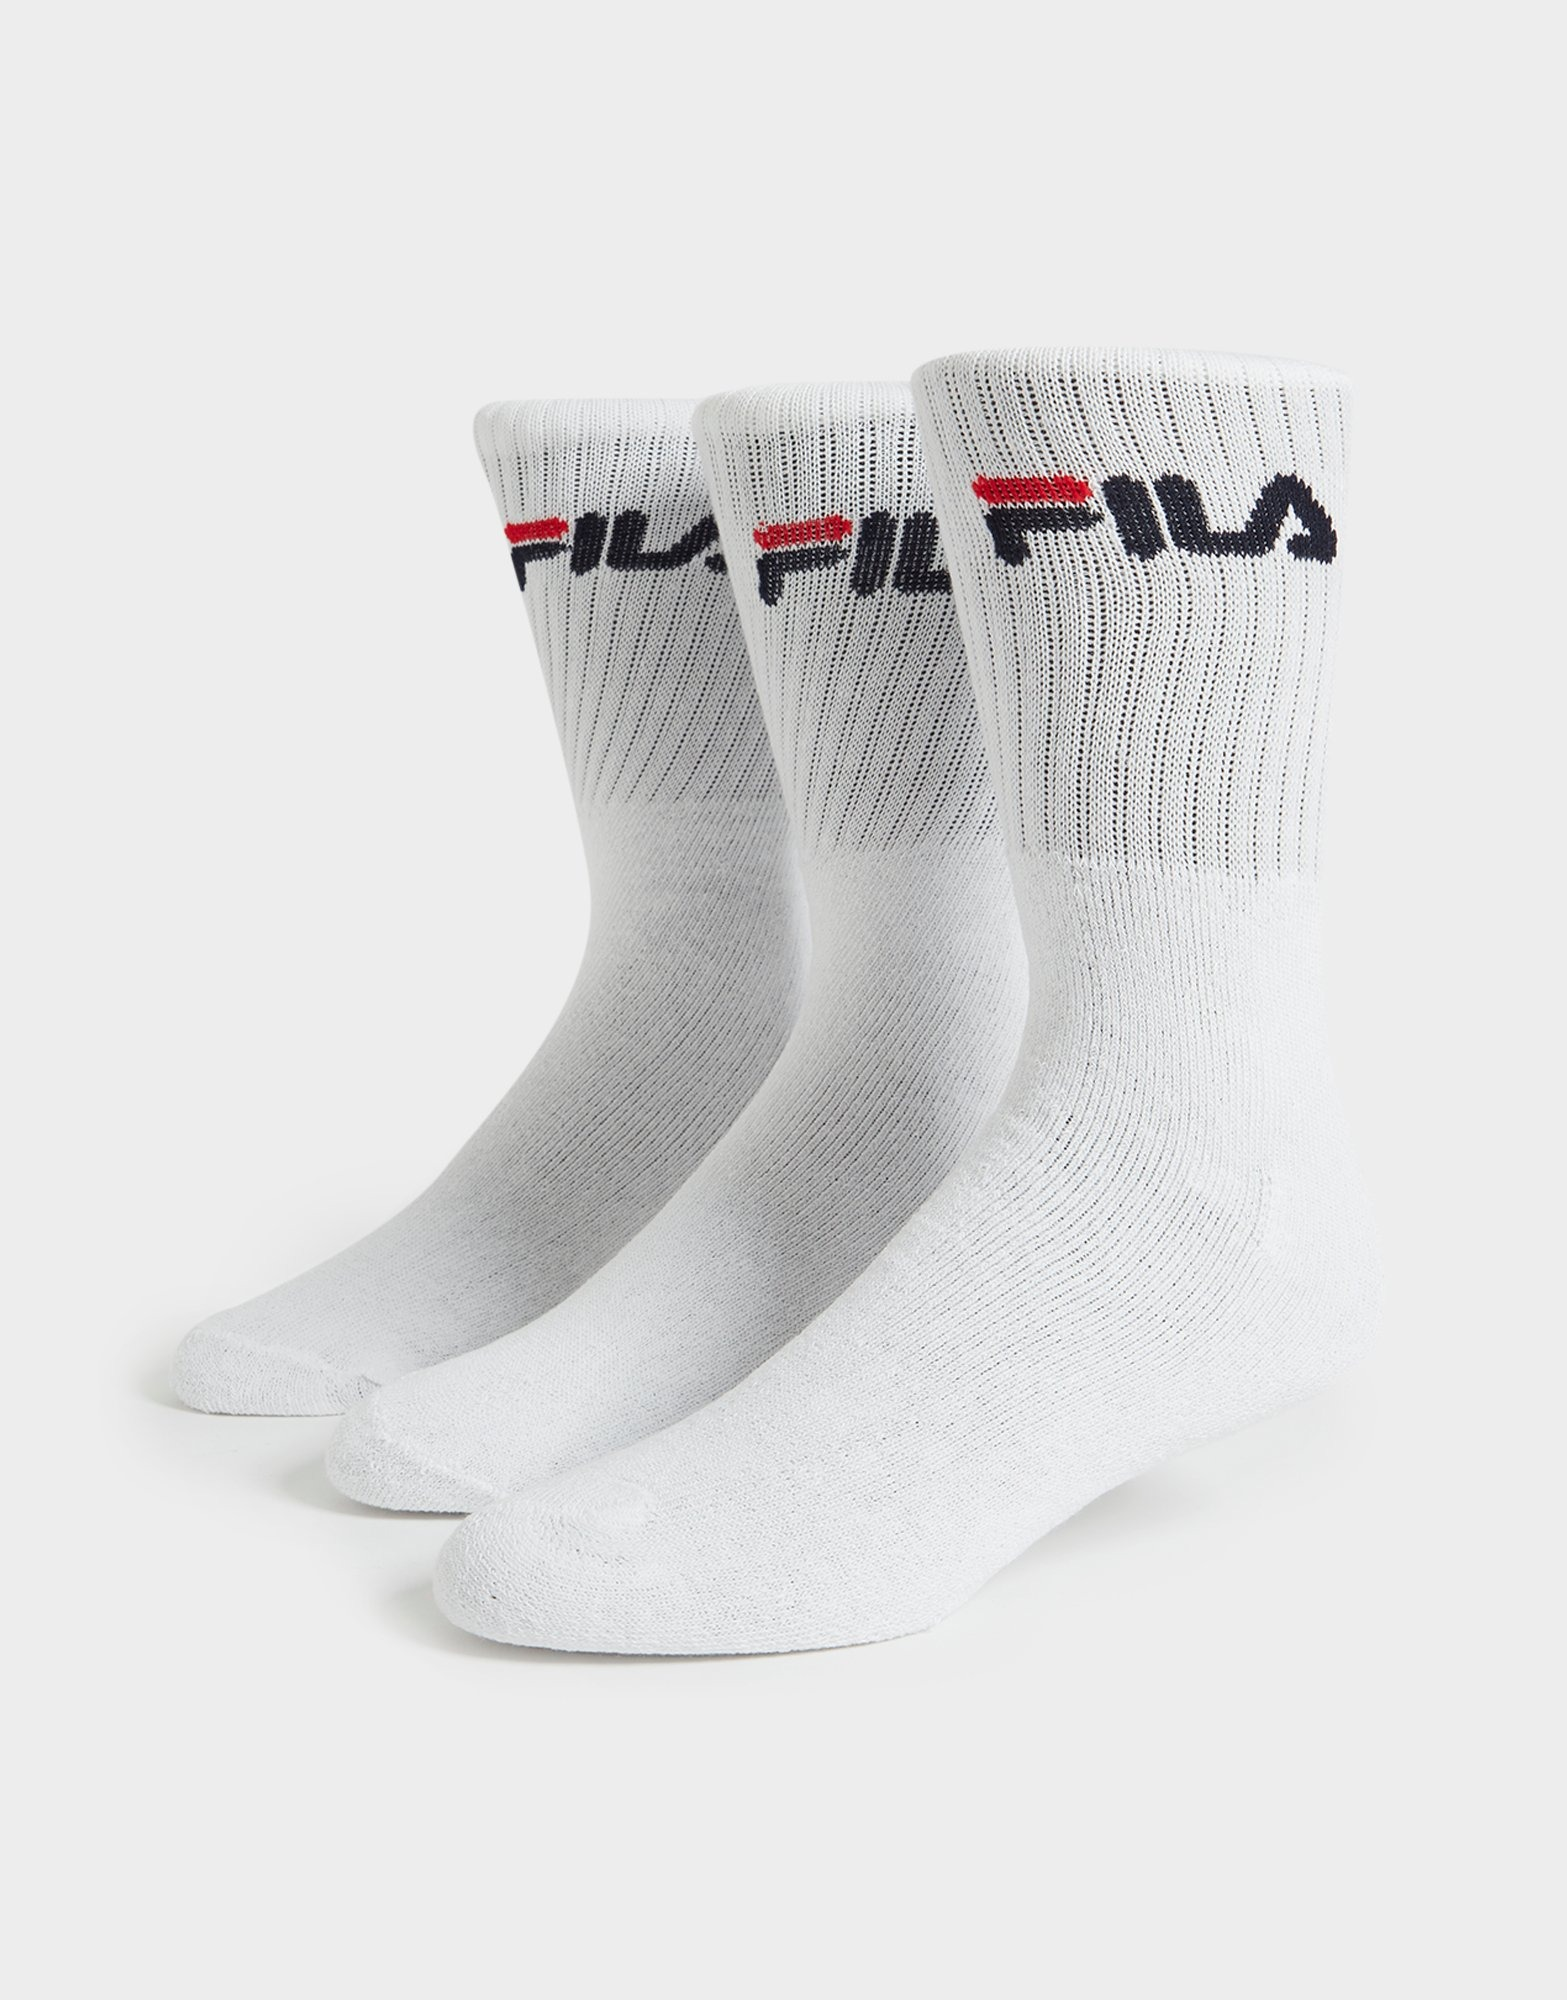 Fila 3 Pack Crew Sports Socks JD Sports  JD Sports